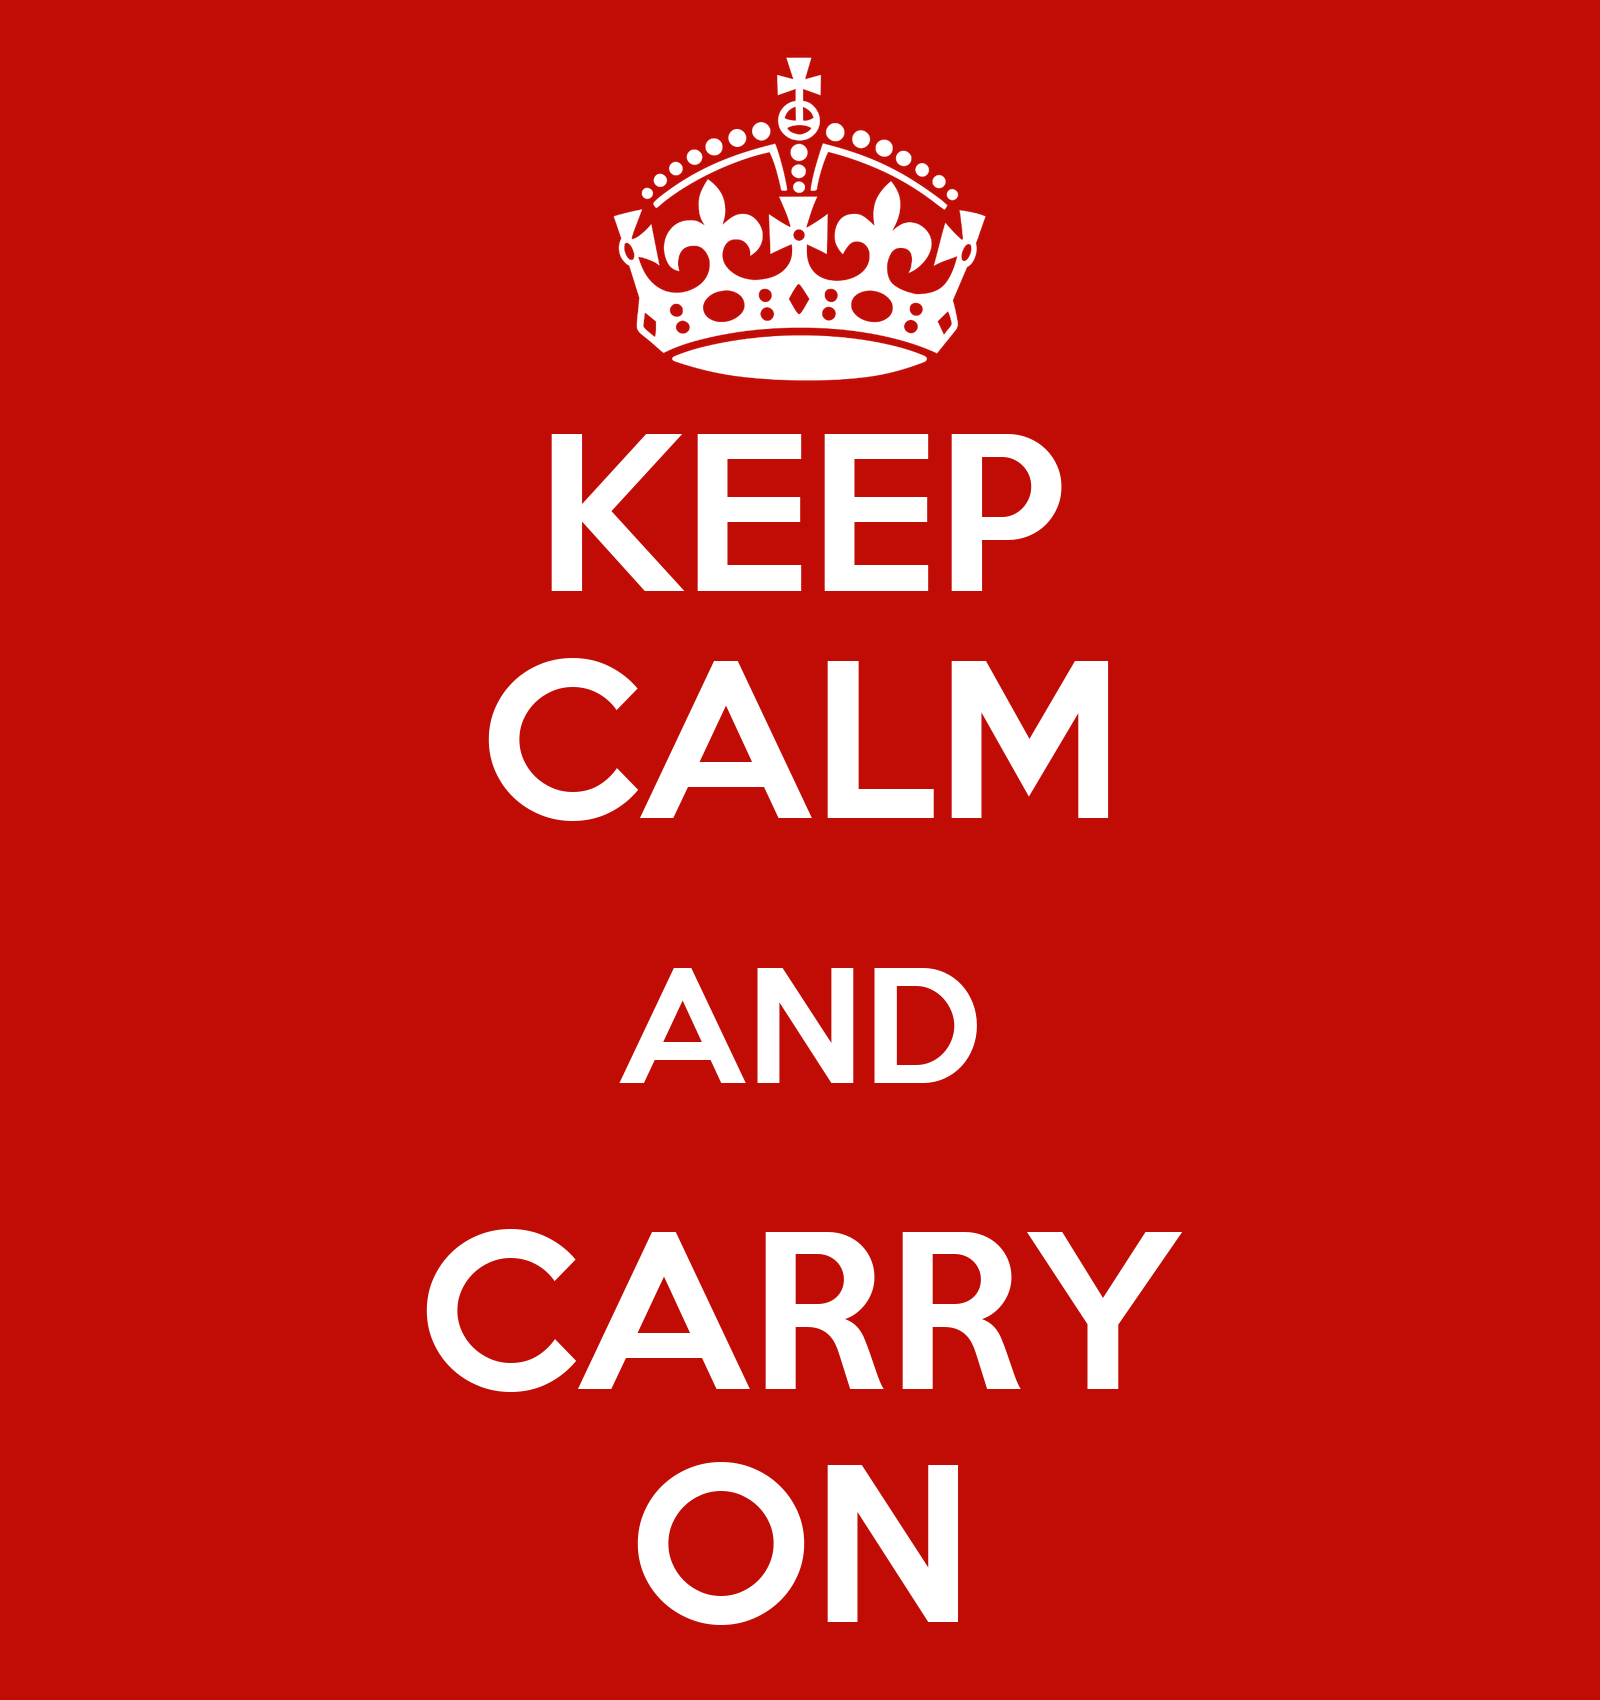 Wall Stickers Personalized Keep Calm And Carry On Keep Calm And Carry On Image